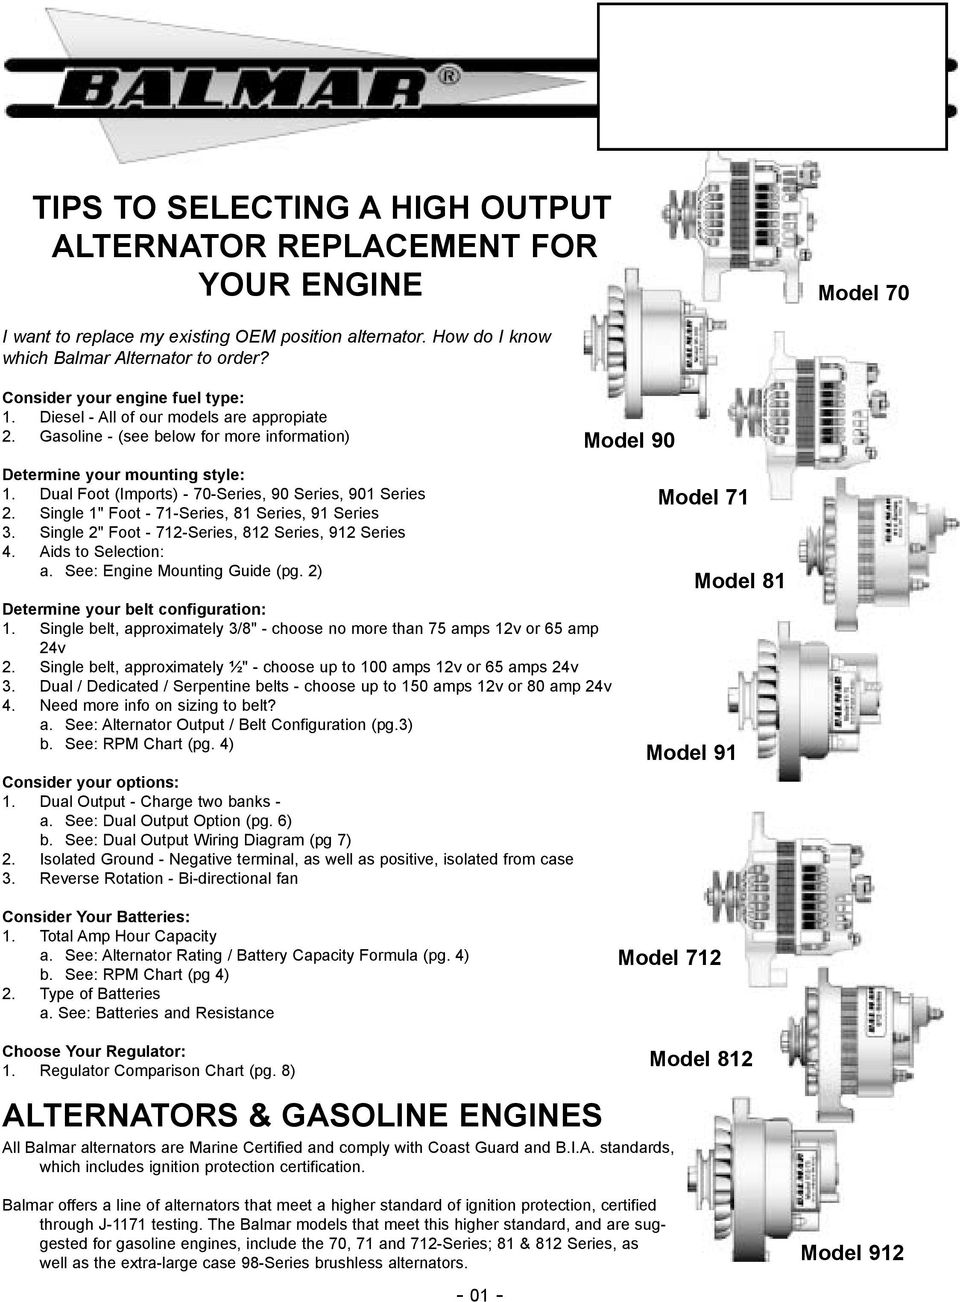 Tips To Selecting A High Output Alternator Replacement For Your Isuzu Wiring Diagram Schematic Formula Dual Foot Imports 70 Series 90 901 2